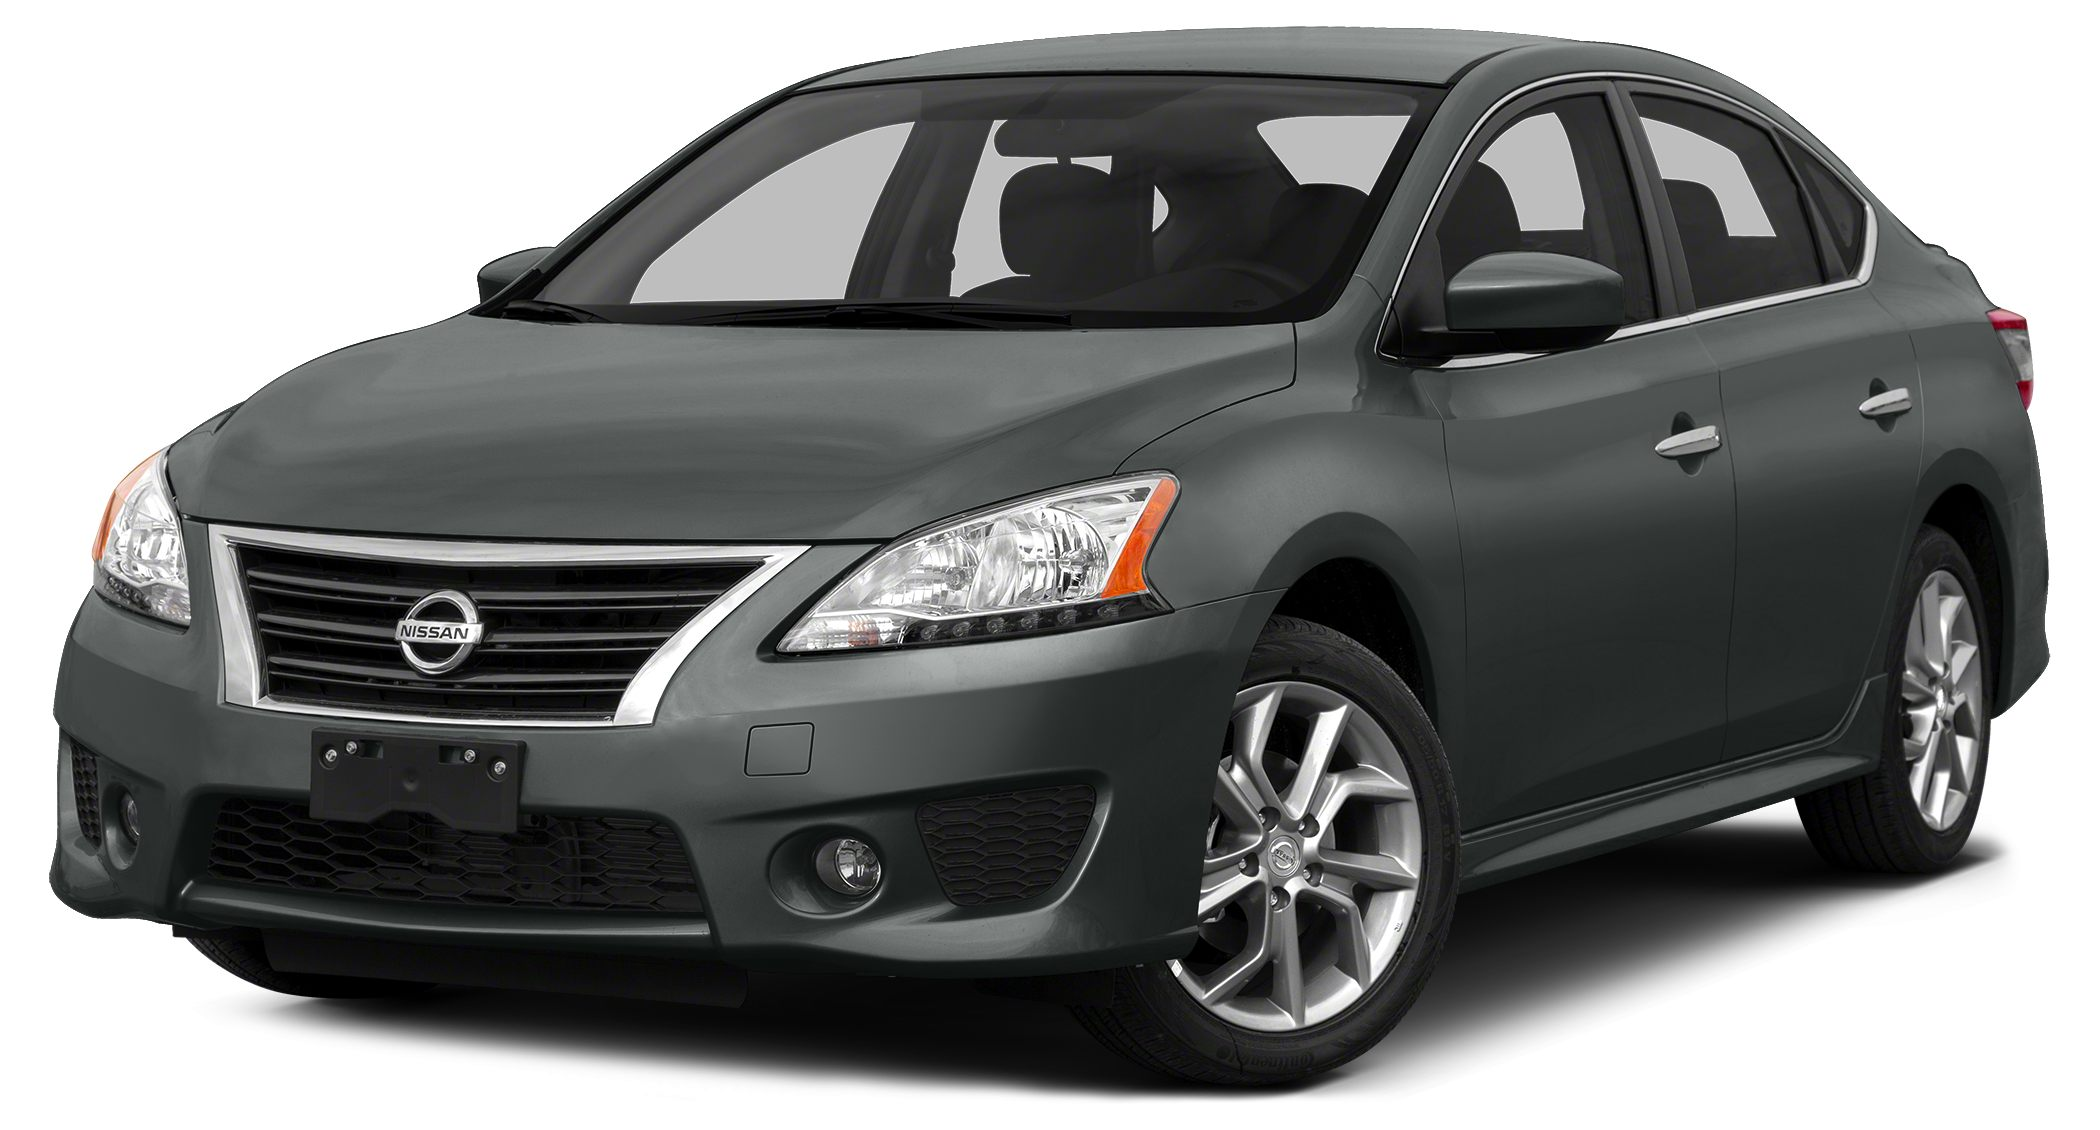 2015 Nissan Sentra SR Sentra completely redefines what an affordable car can be and proves the goo